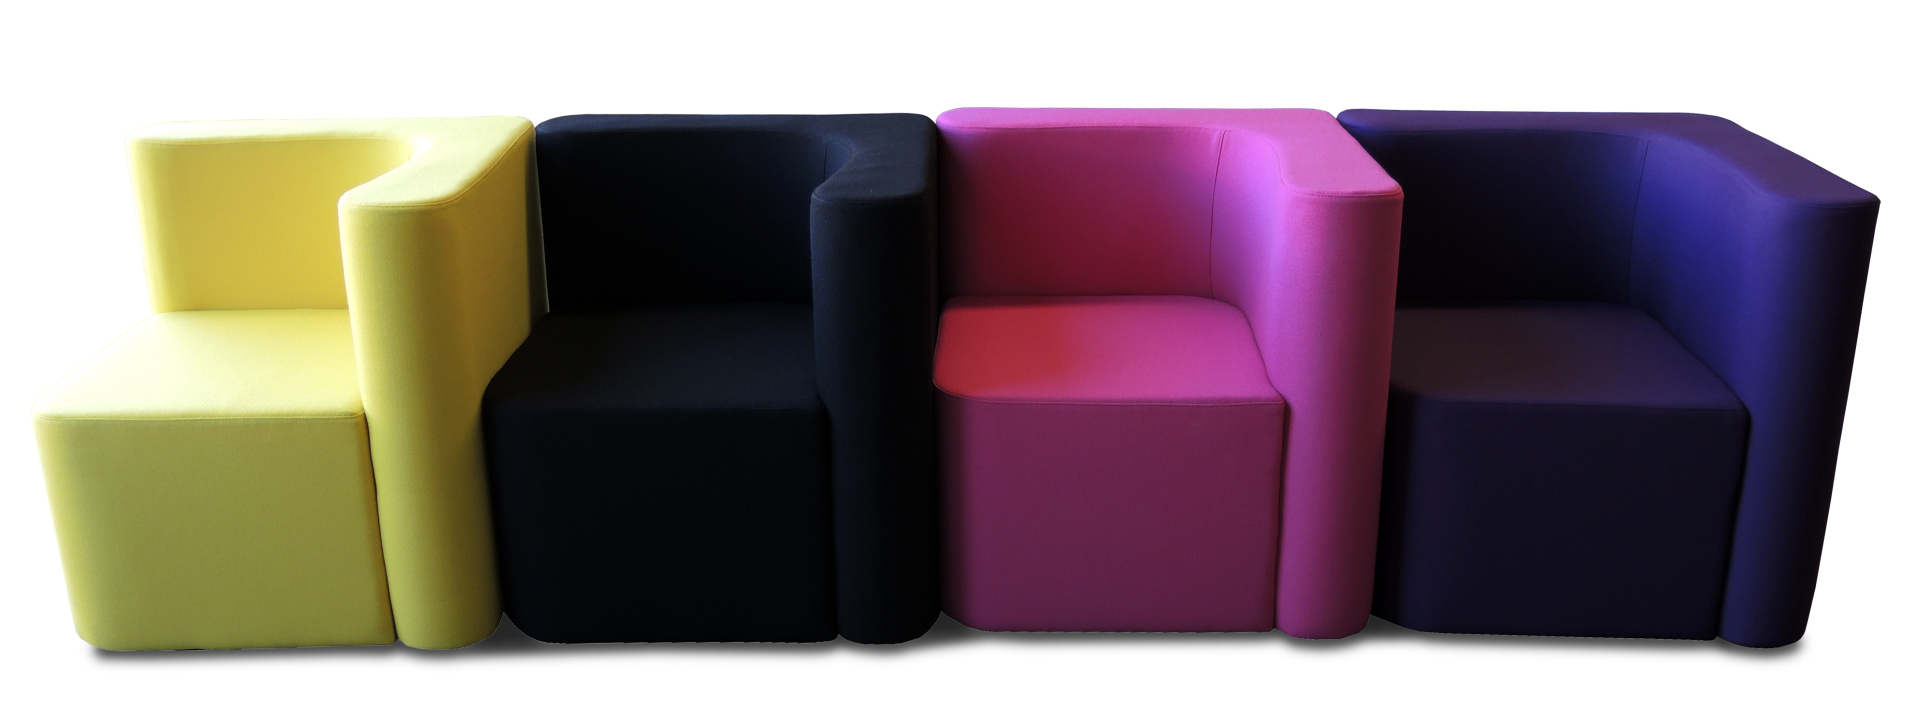 Direct Ergonomics | Sydney Office Furniture | Ergonomic Furniture | Collaborative Seating | Waiting Lounges | Waiting Room Seating | Ergonomic Seating | Conekt